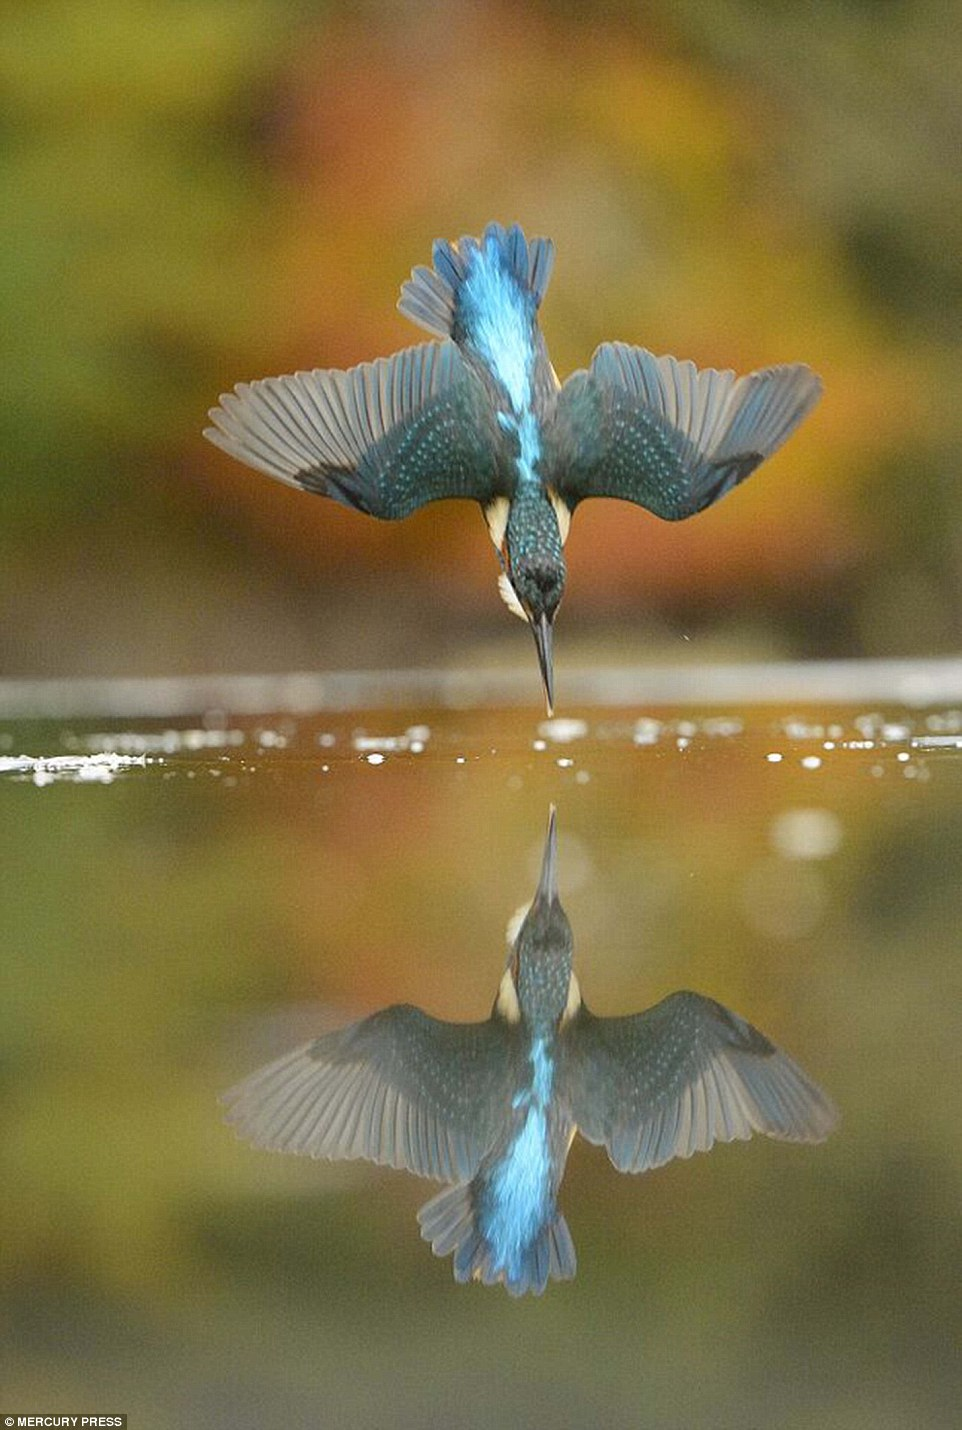 Perfect shots of a diving kingfisher 49